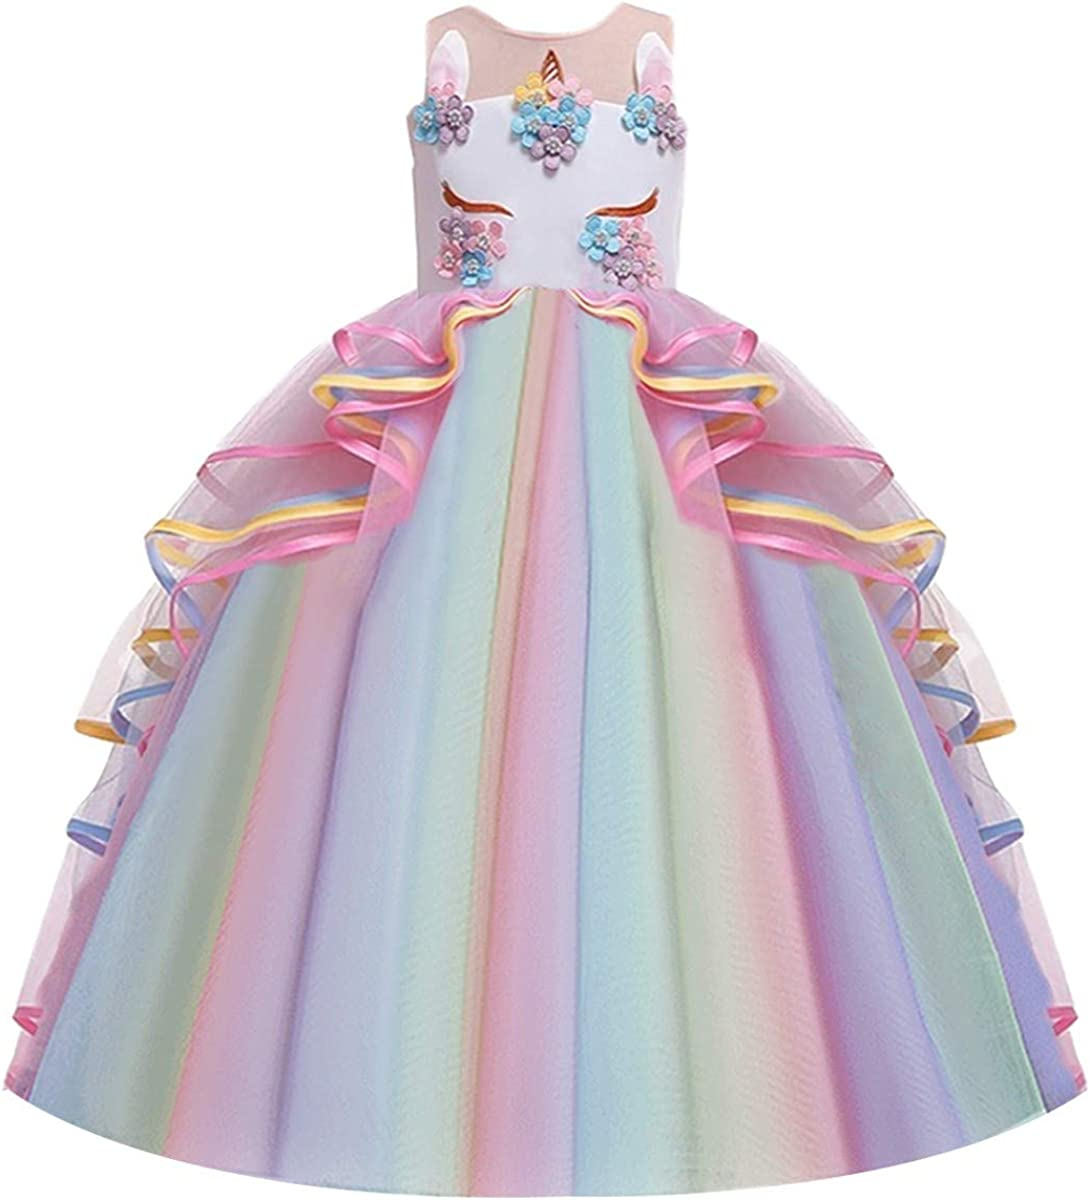 MYRISAM Girls Unicorn Princess Costume Wedding Birthday Pageant Halloween Carnival Christmas Party Long Tulle Fancy Dress Up Outfits Dance Performance Photography Ball Gowns 4-15Y